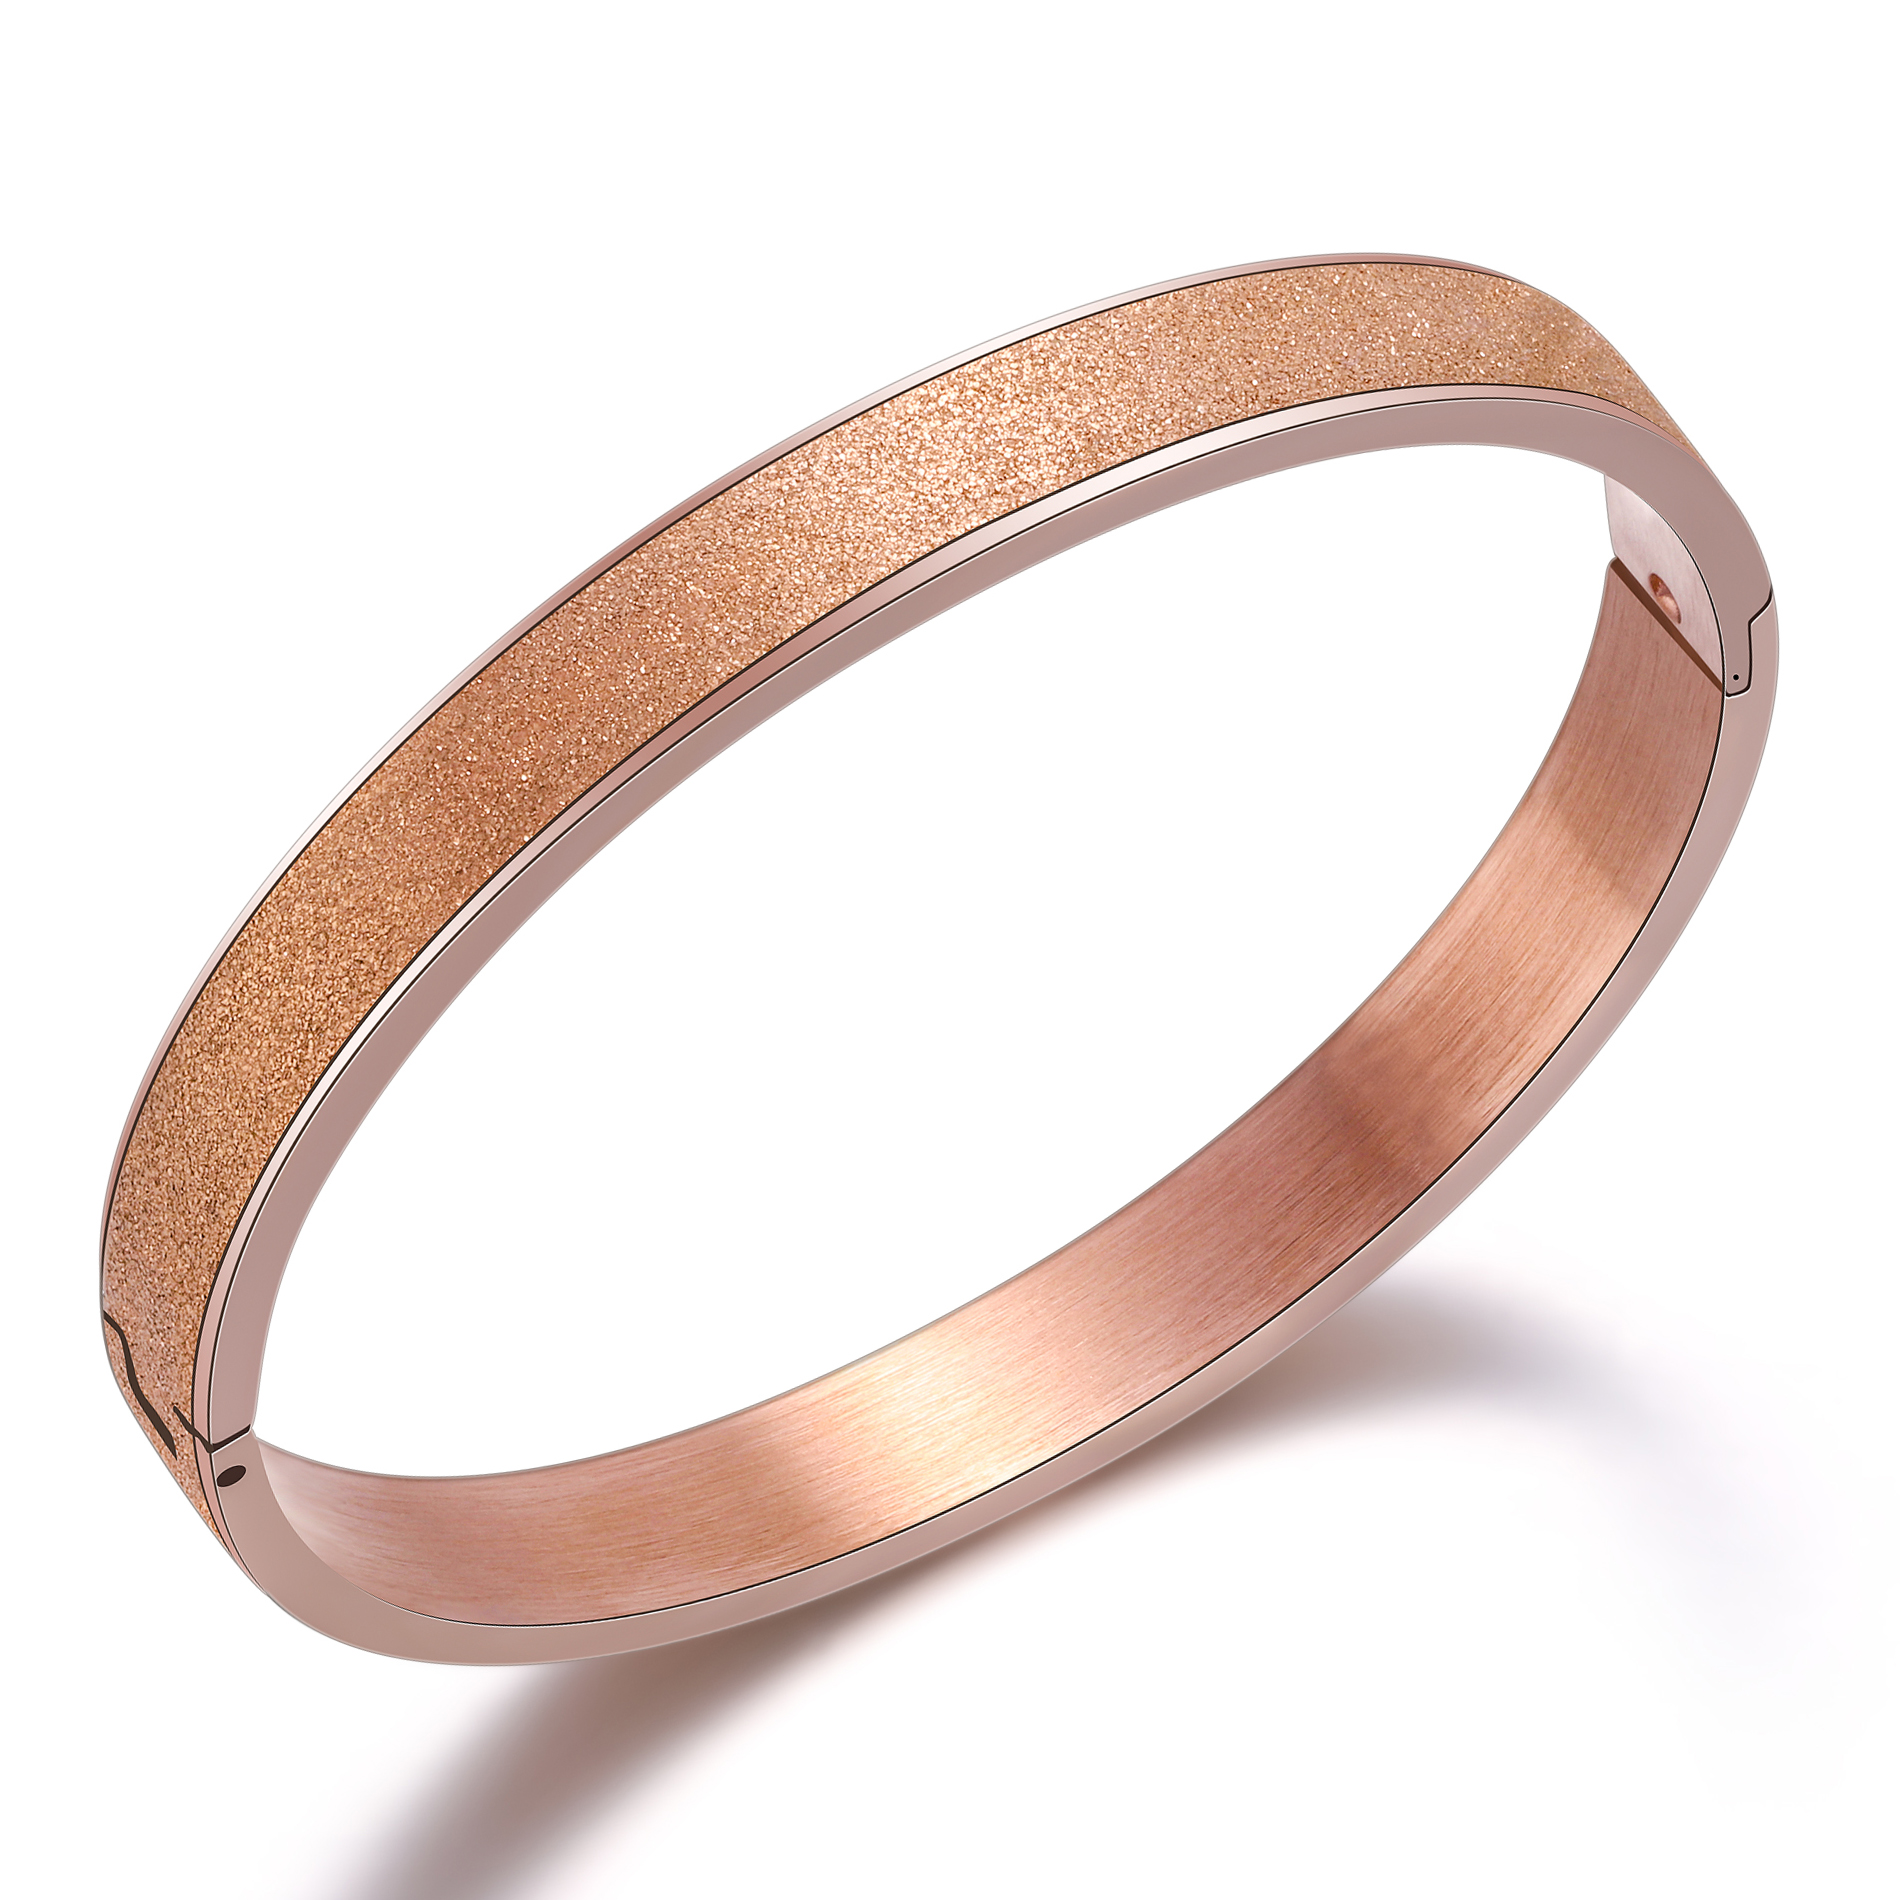 New Jewelry Rose Gold/Golden Plated Frosting Bangle Women Korean Fashion Bracelets Stainless Steel Wristband Lovers Jewelry